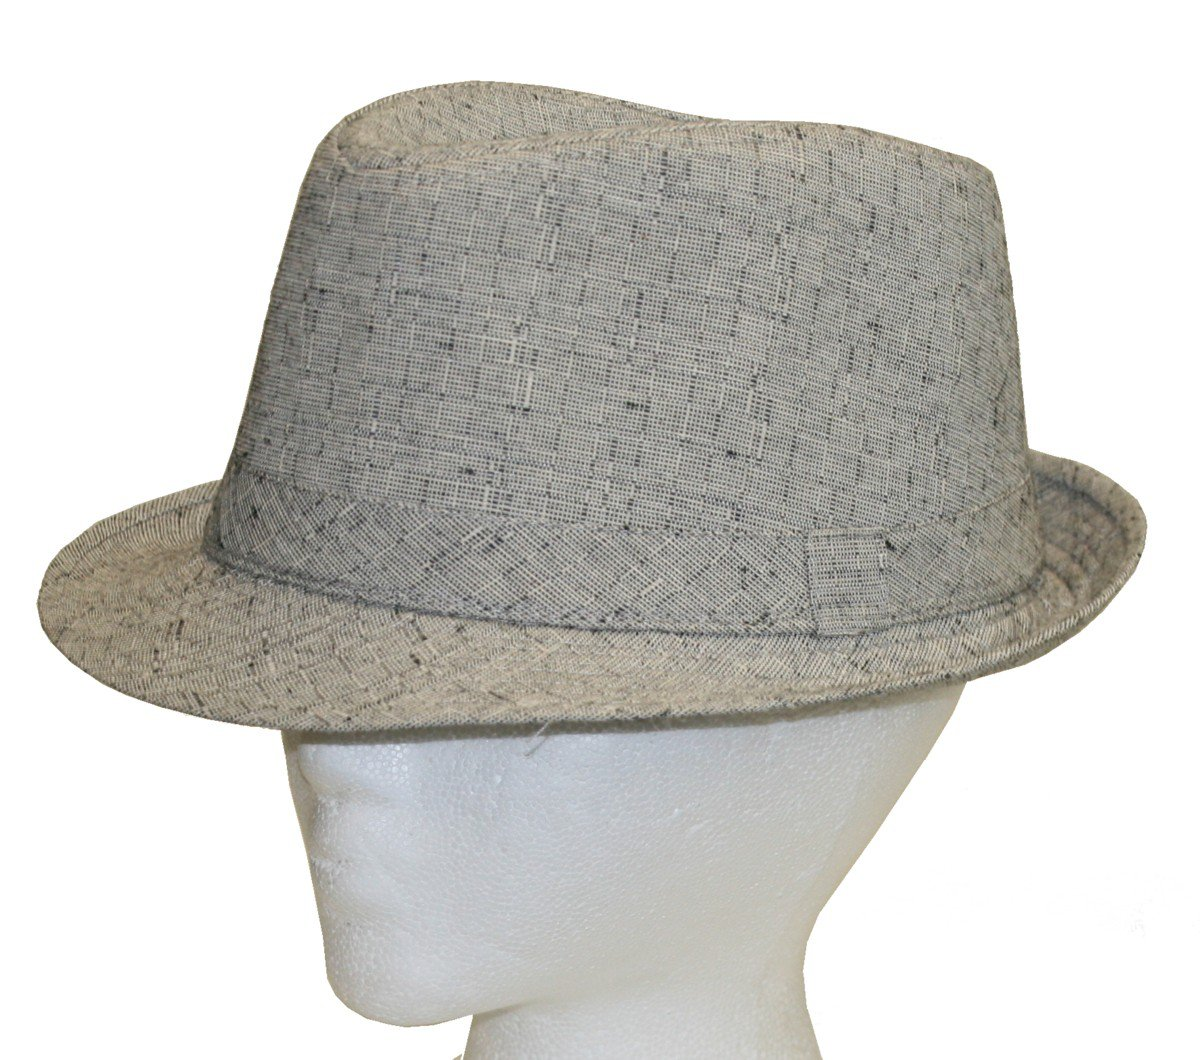 Shop for boys fedora hat grey online at Target. Free shipping on purchases over $35 and save 5% every day with your Target REDcard.